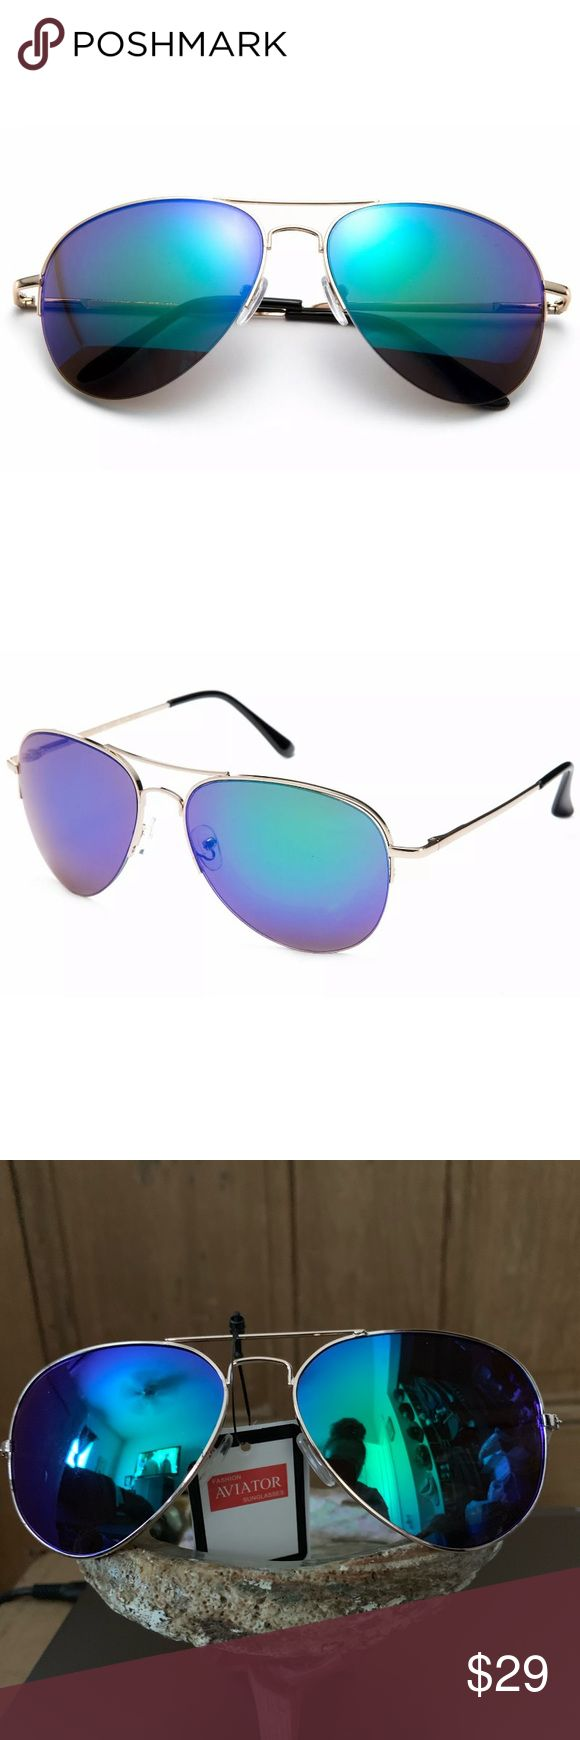 Oculos de sol com lentes aviador com espelho verde Av Newbee Fashion Aviator Sunglasses …   – My Posh Picks